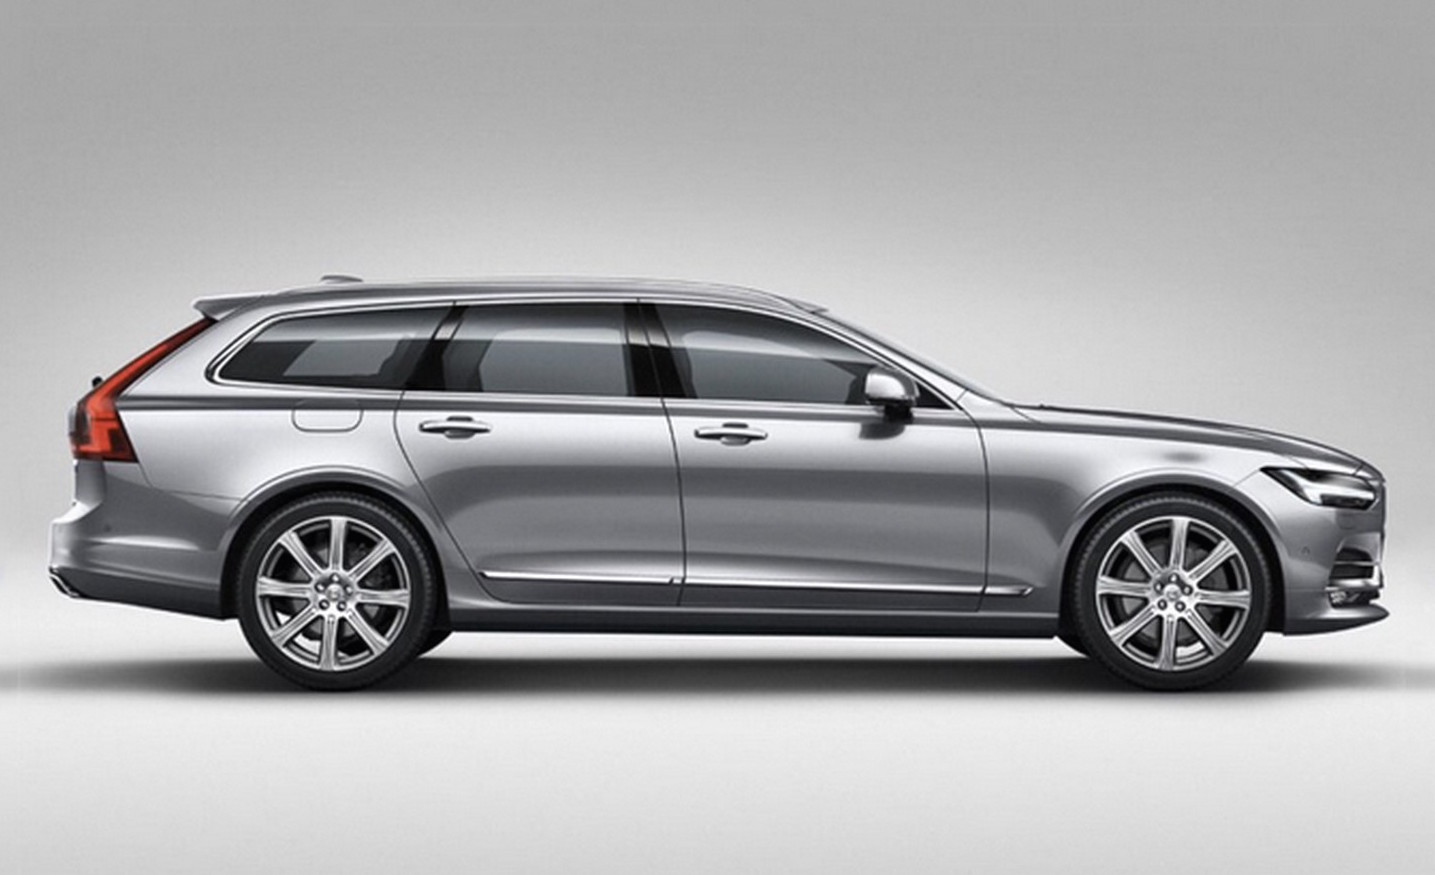 2017 volvo v90 wagon revealed in leaked images performancedrive. Black Bedroom Furniture Sets. Home Design Ideas